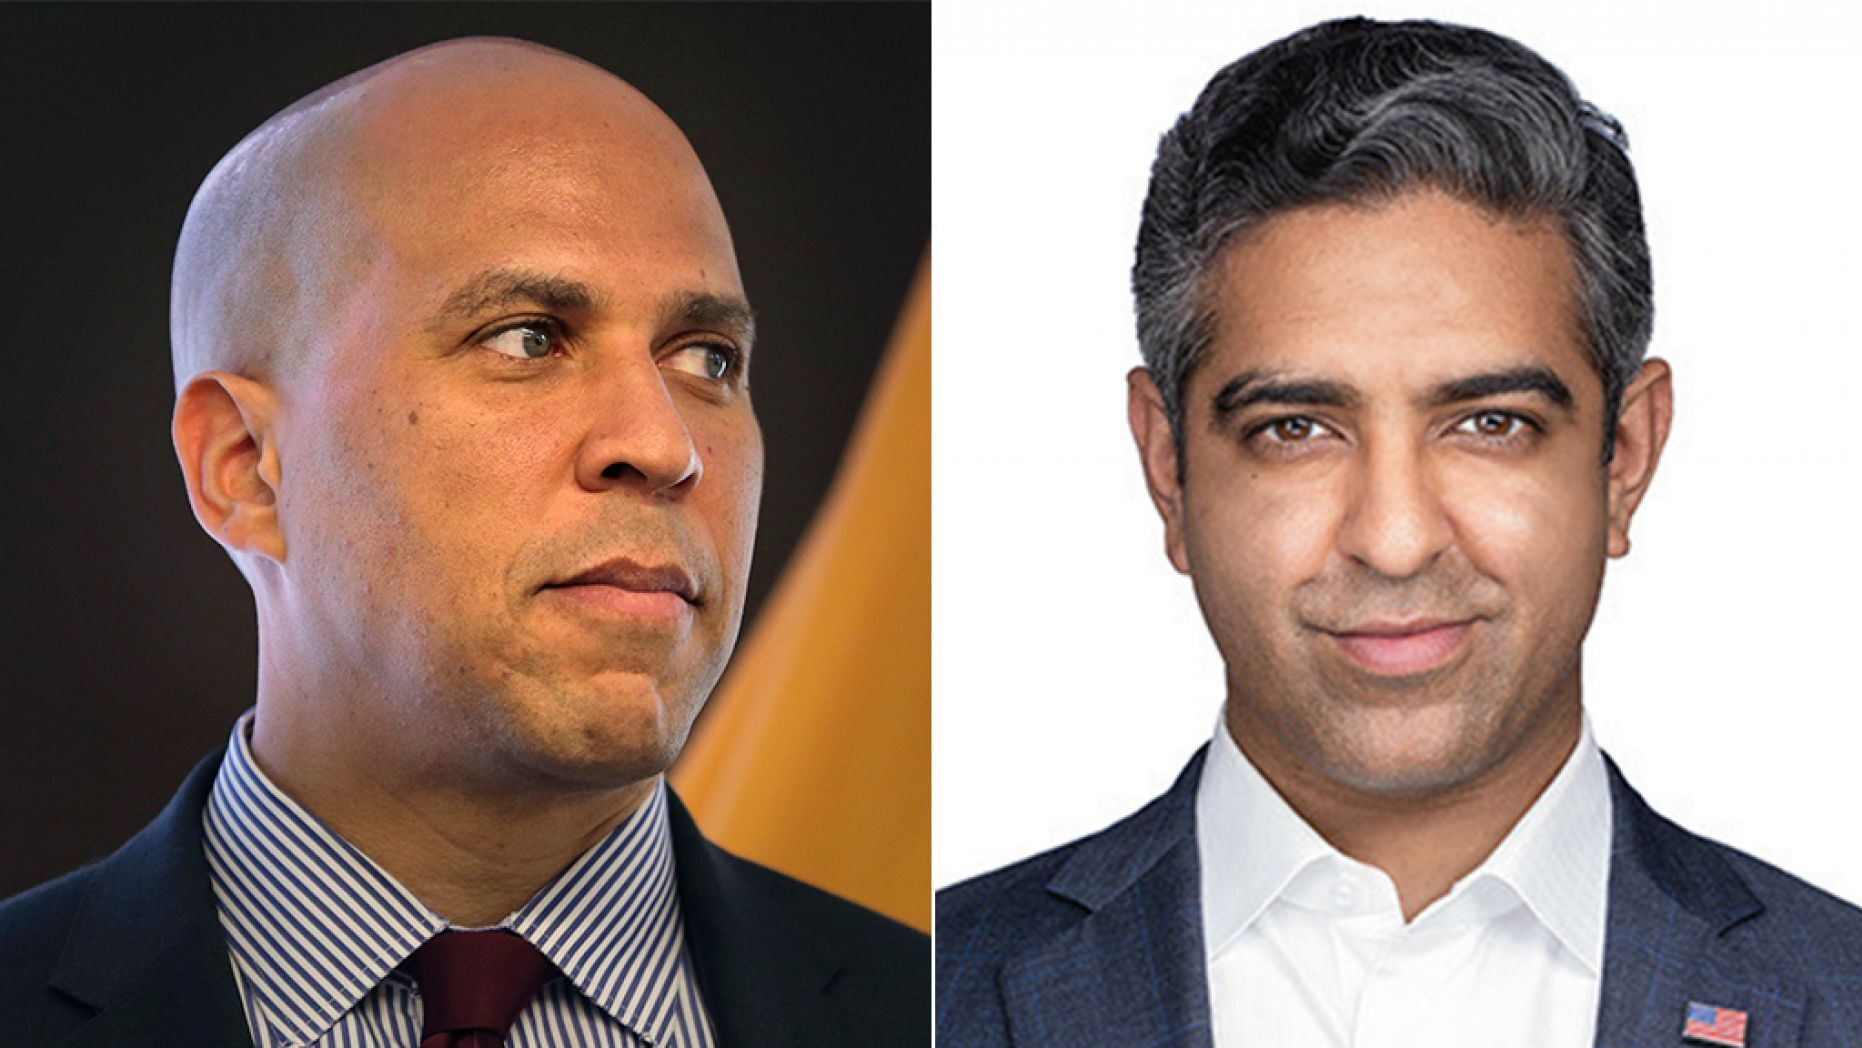 GOP Senate candidate aims to beat Cory Booker in 2020: 'We are going to remove him from politics'